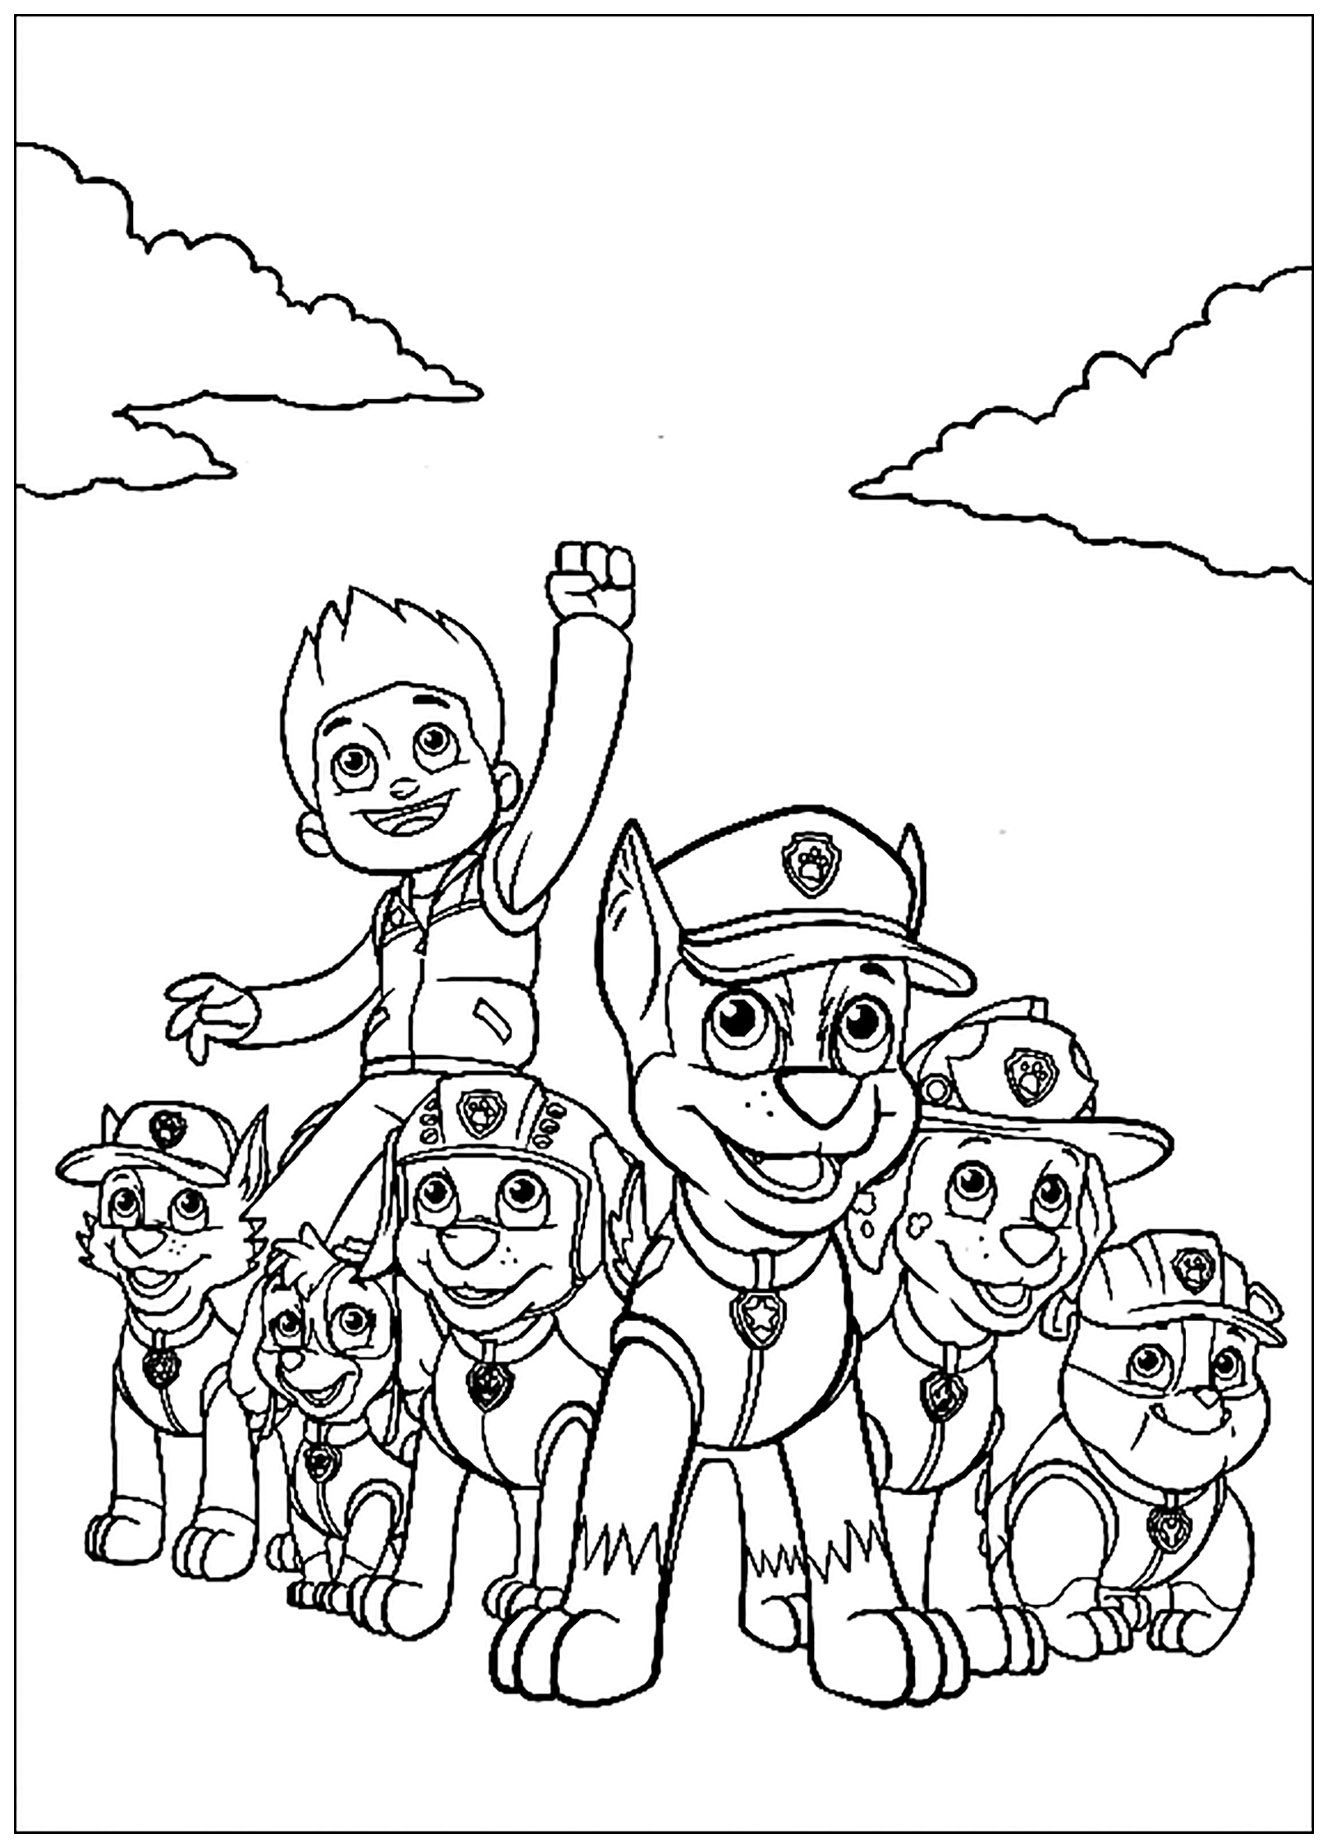 Simple Paw Patrol Coloring Page To Print And Color For Free From The Gallery Paw Patrol Paw Patrol Coloring Pages Paw Patrol Coloring Minion Coloring Pages [ 1848 x 1328 Pixel ]